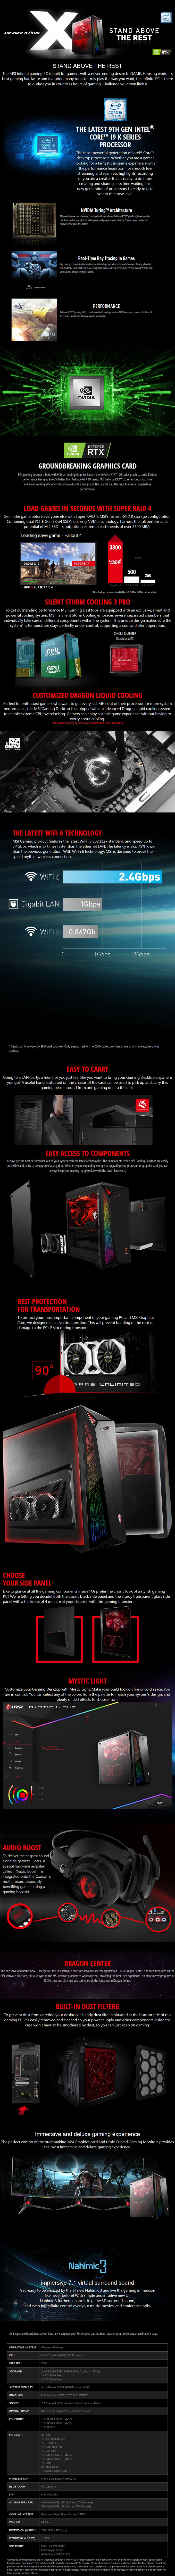 MSI INFINITE X Plus Mid-Tower Gaming PC i7-9700KF 64GB 512GB+2TB RTX 2070 Win10H - Desktop Overview 1